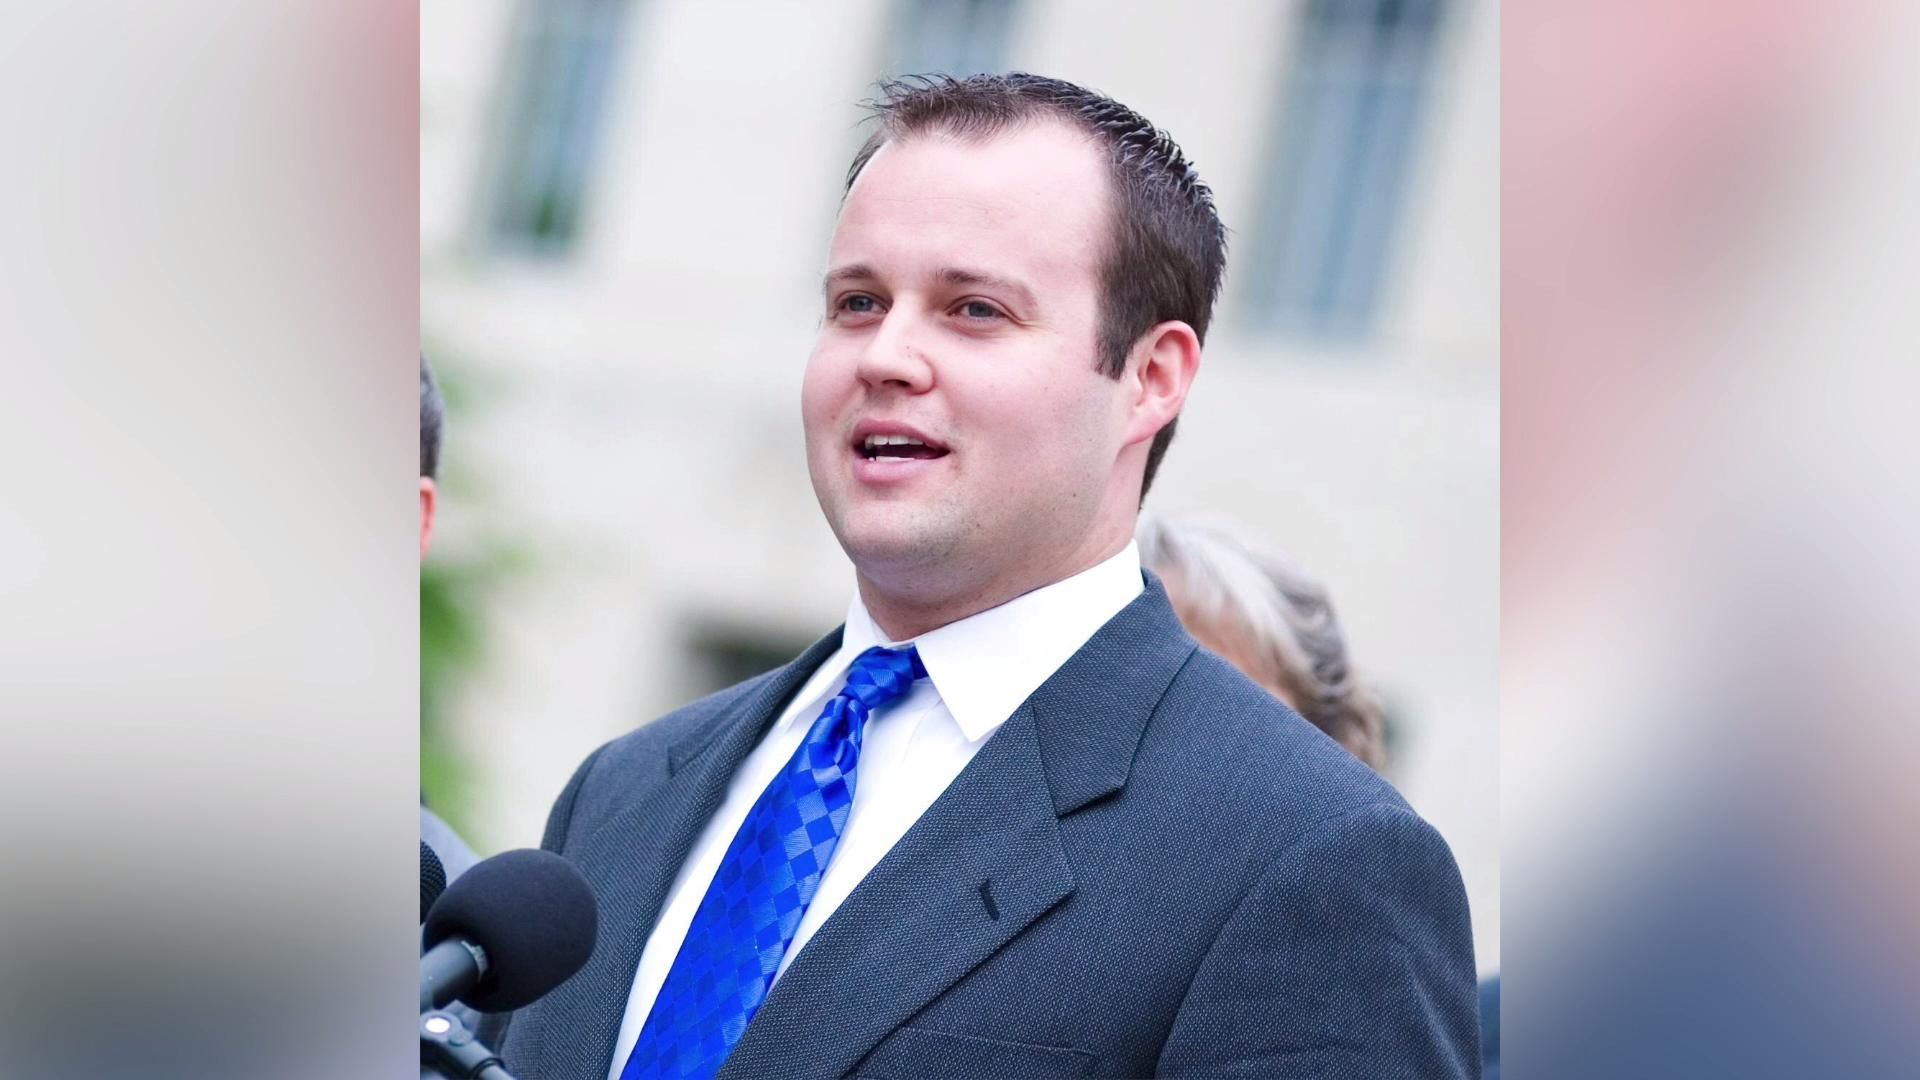 Josh Duggar apologizes after sex abuse allegations surface